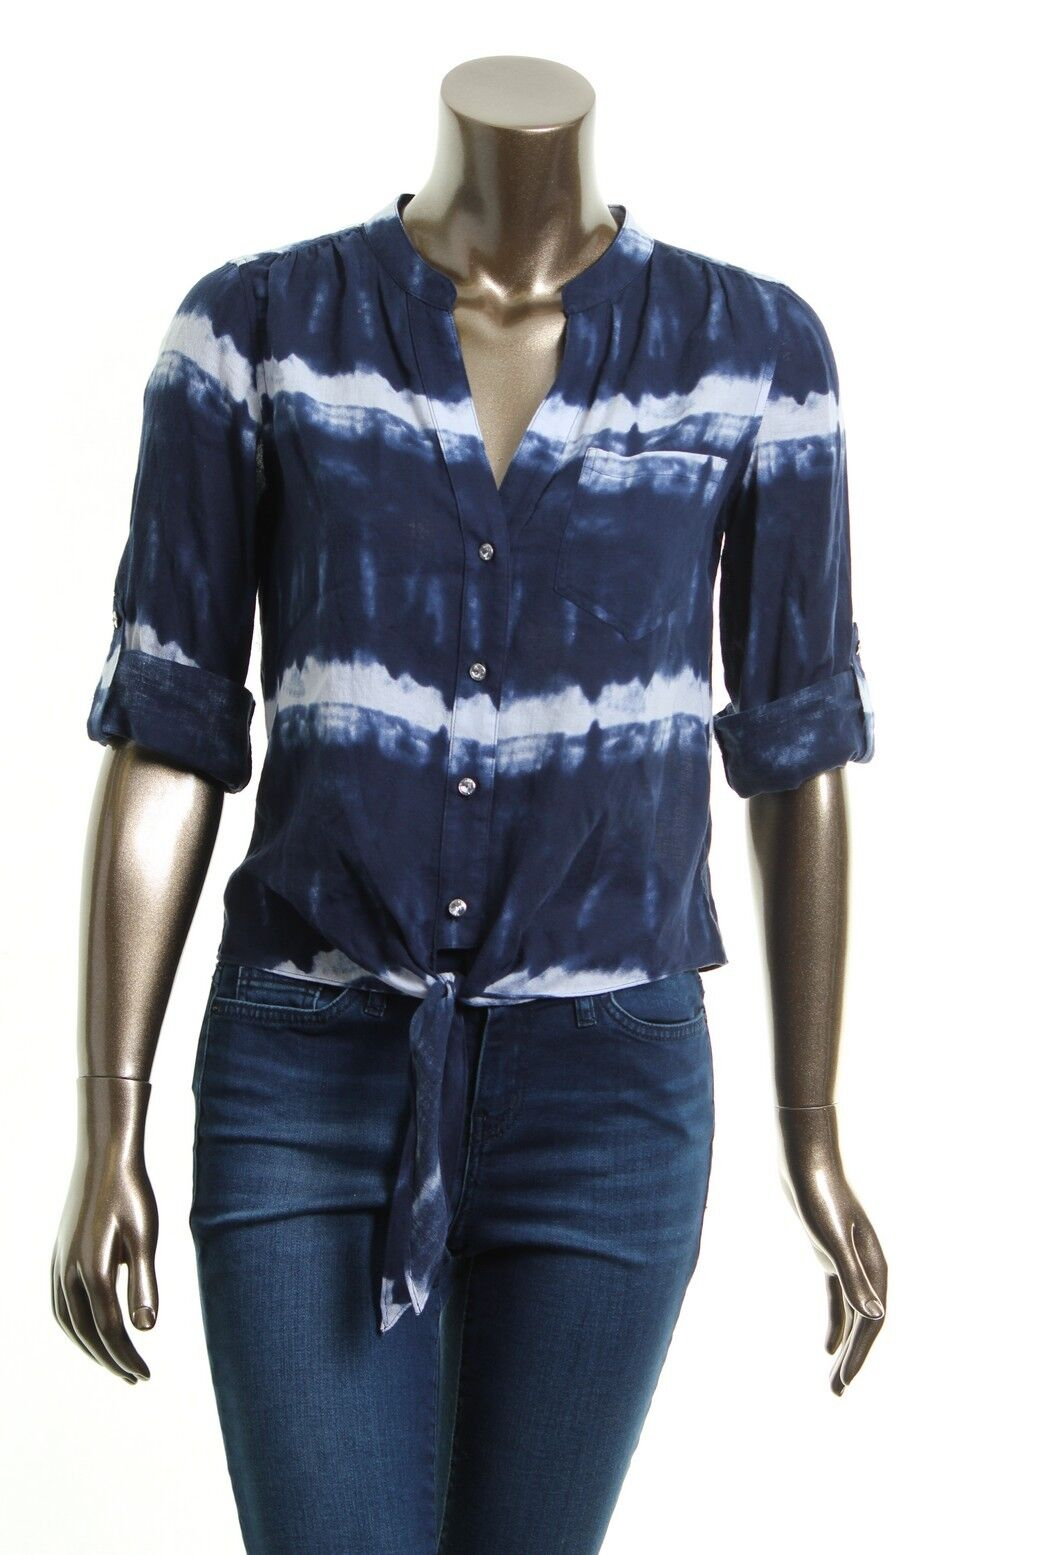 INC NEW Navy bluee Women's 100% Linen Button Down Shirt or Tye & Die Top 6